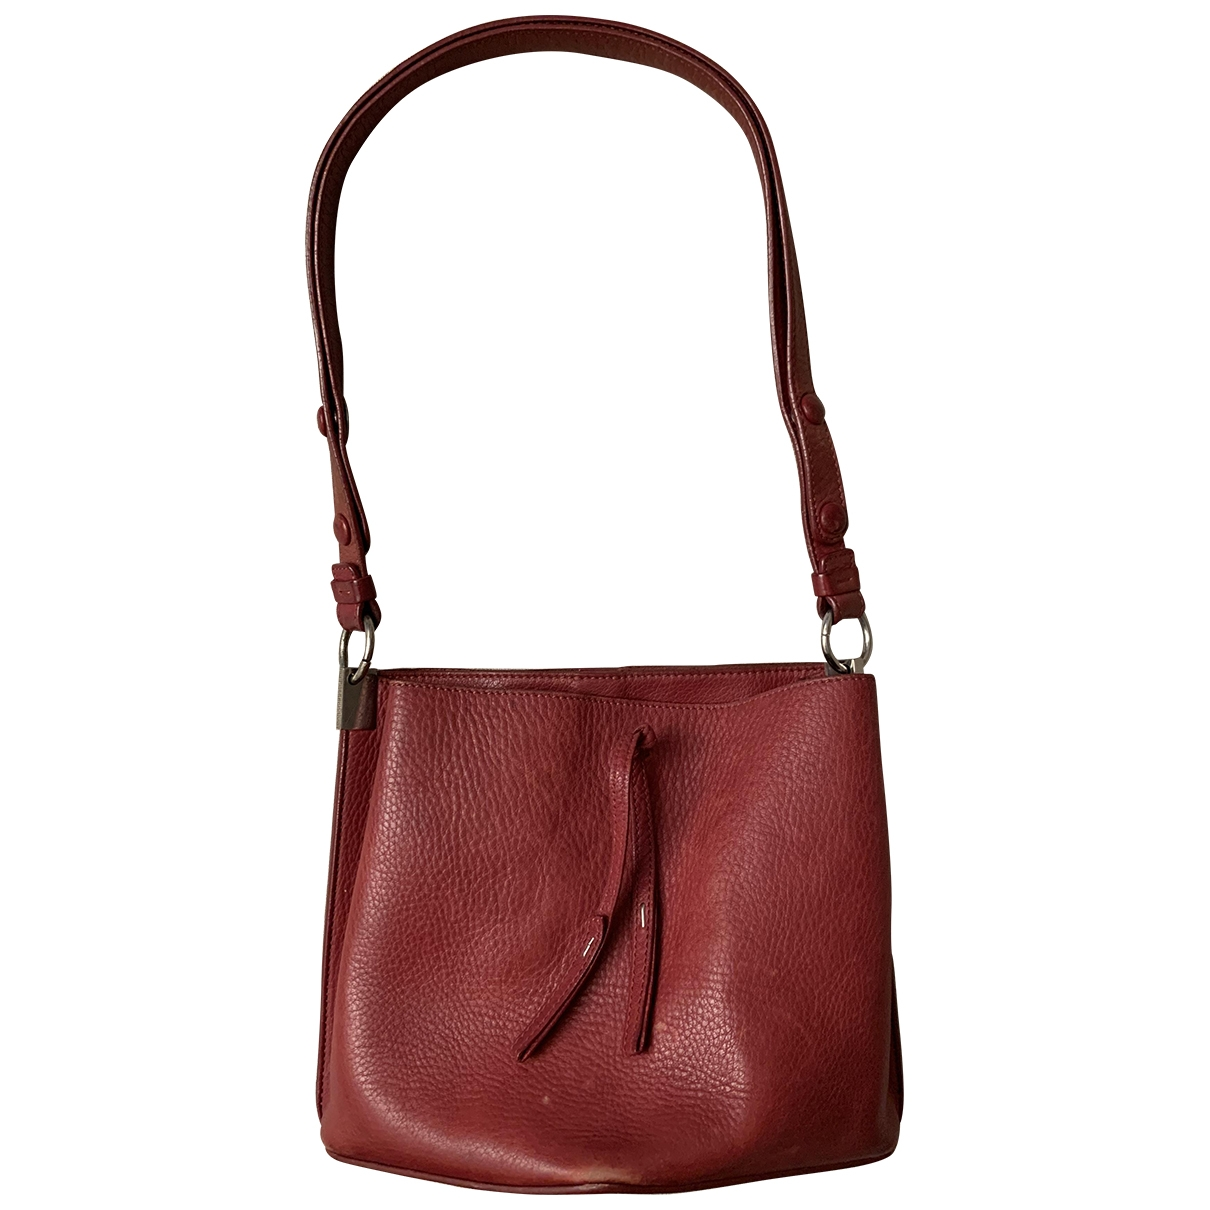 Maison Martin Margiela \N Burgundy Leather handbag for Women \N